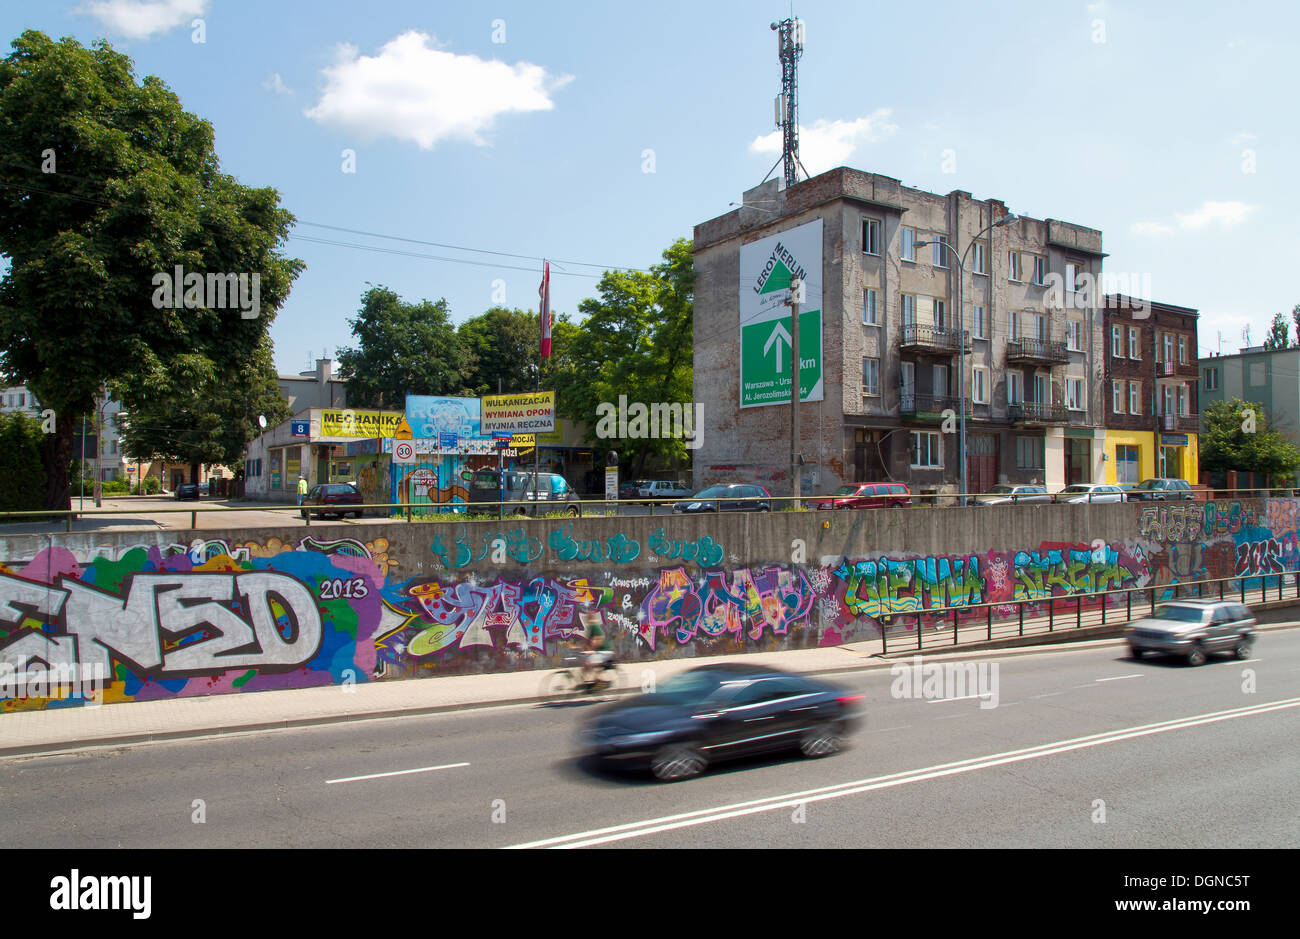 Warsaw, Poland, on an arterial road traffic - Stock Image